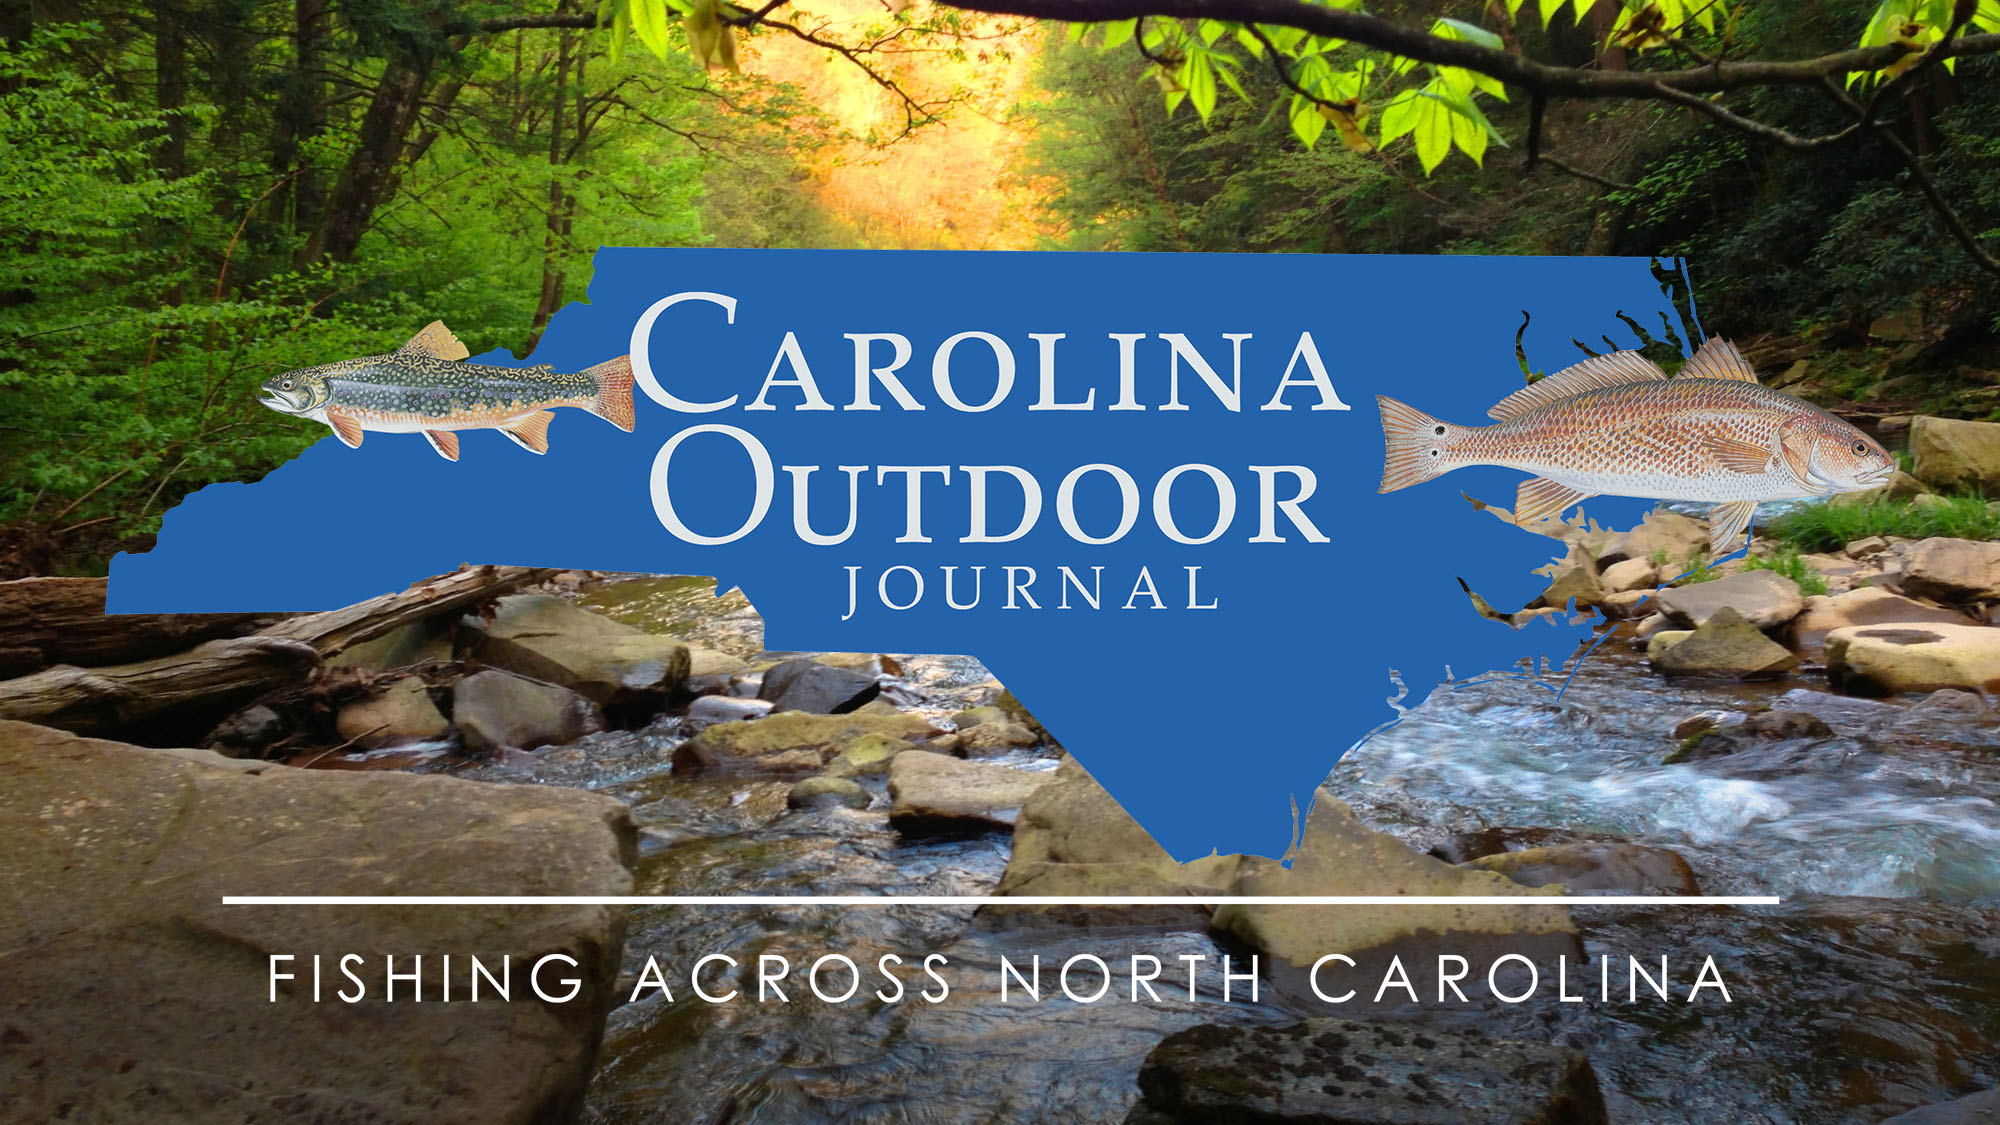 Carolina Outdoor Journal